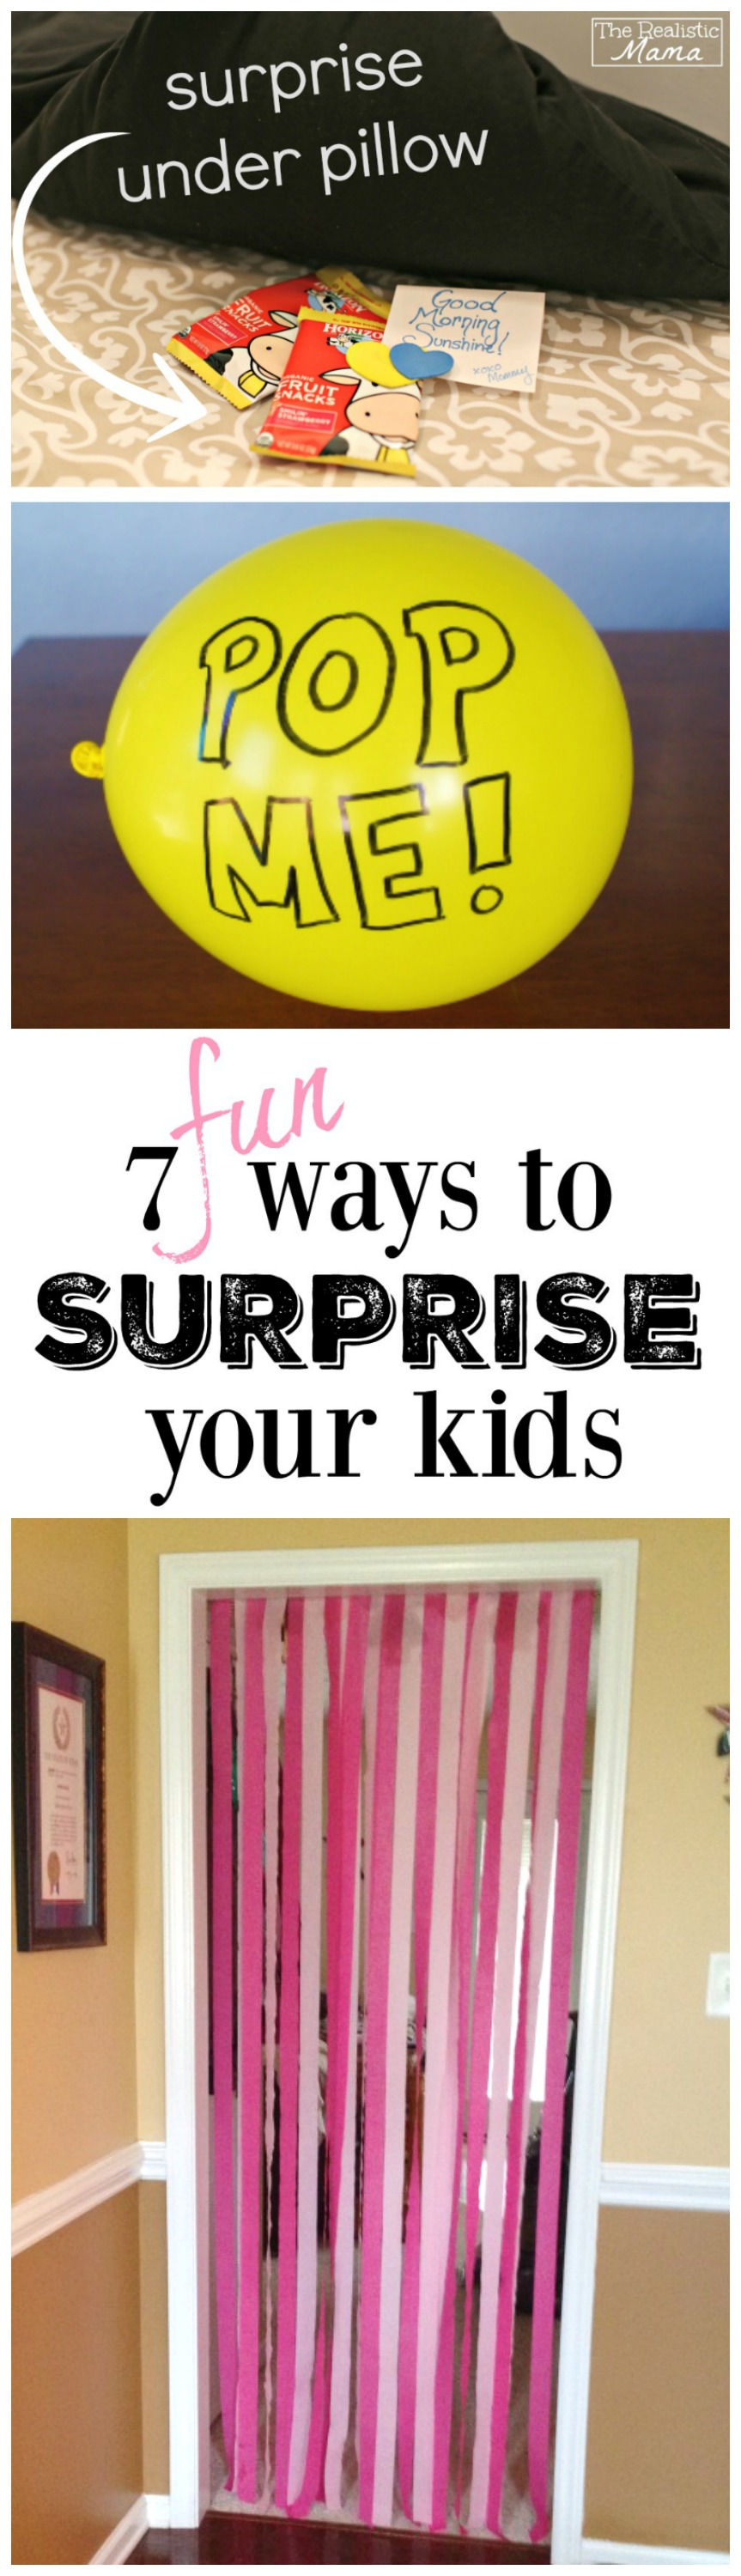 7 fun and easy ways to surprise your kids